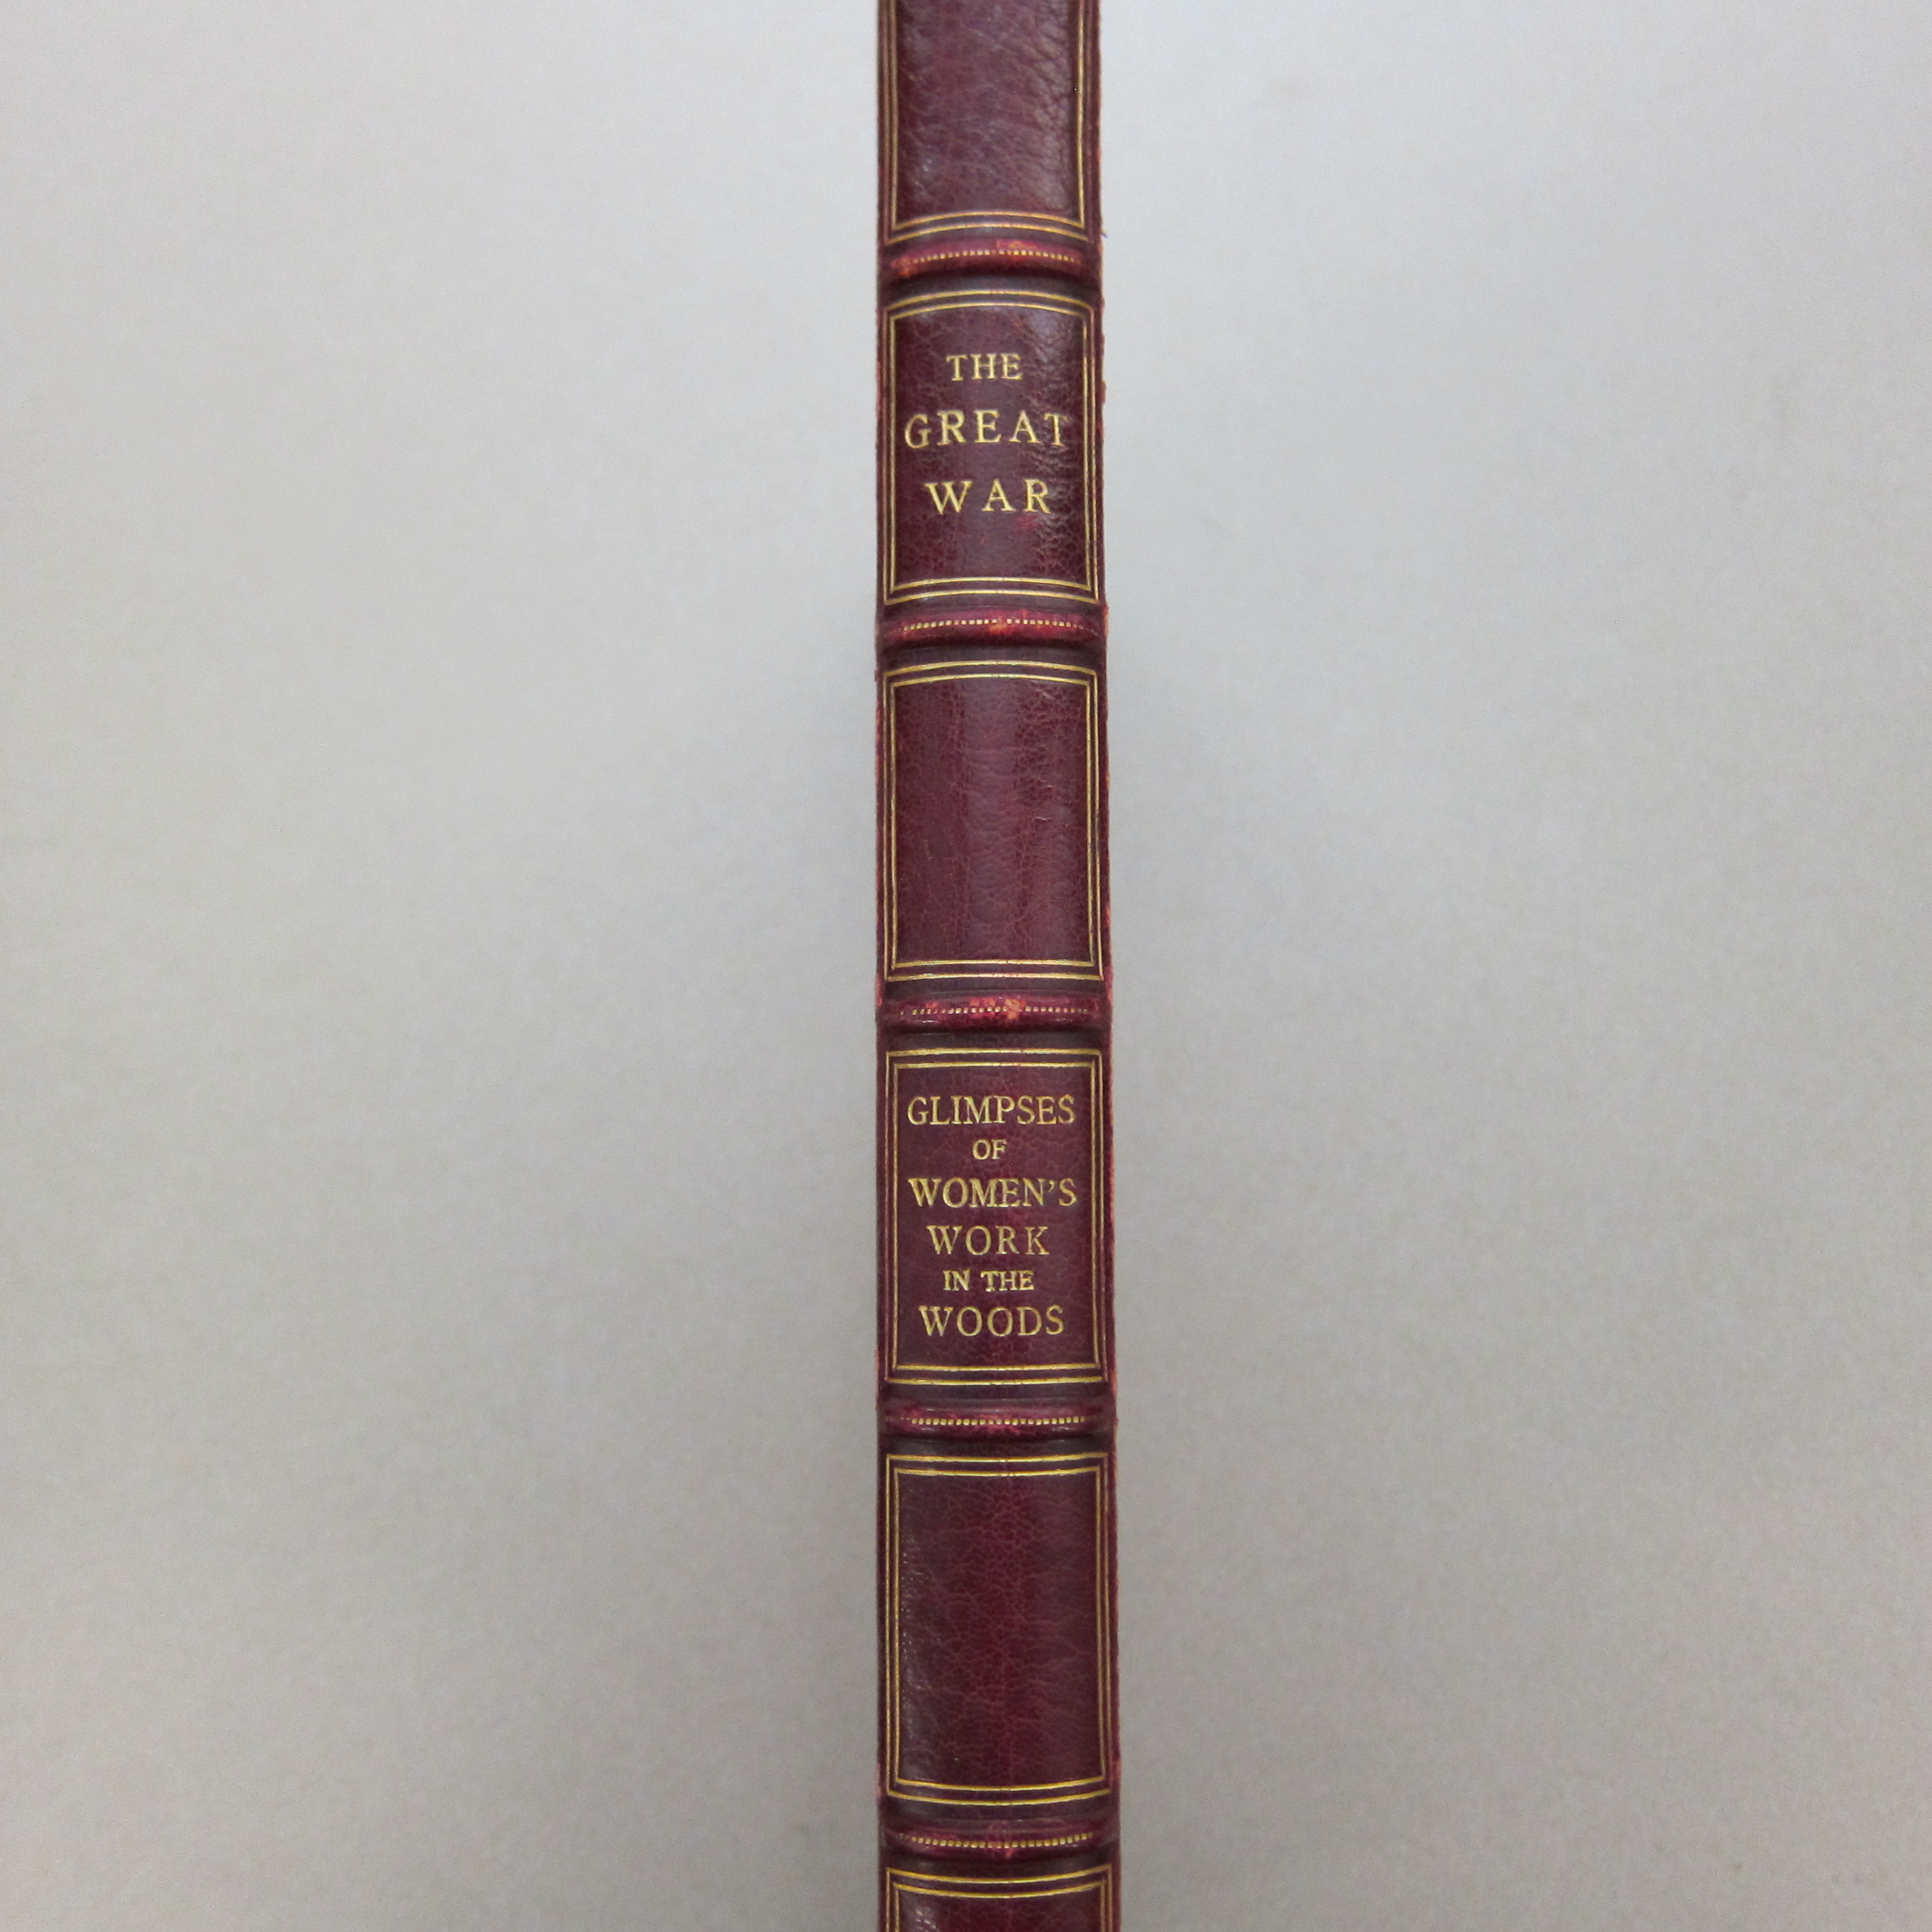 Red leather spine of book.